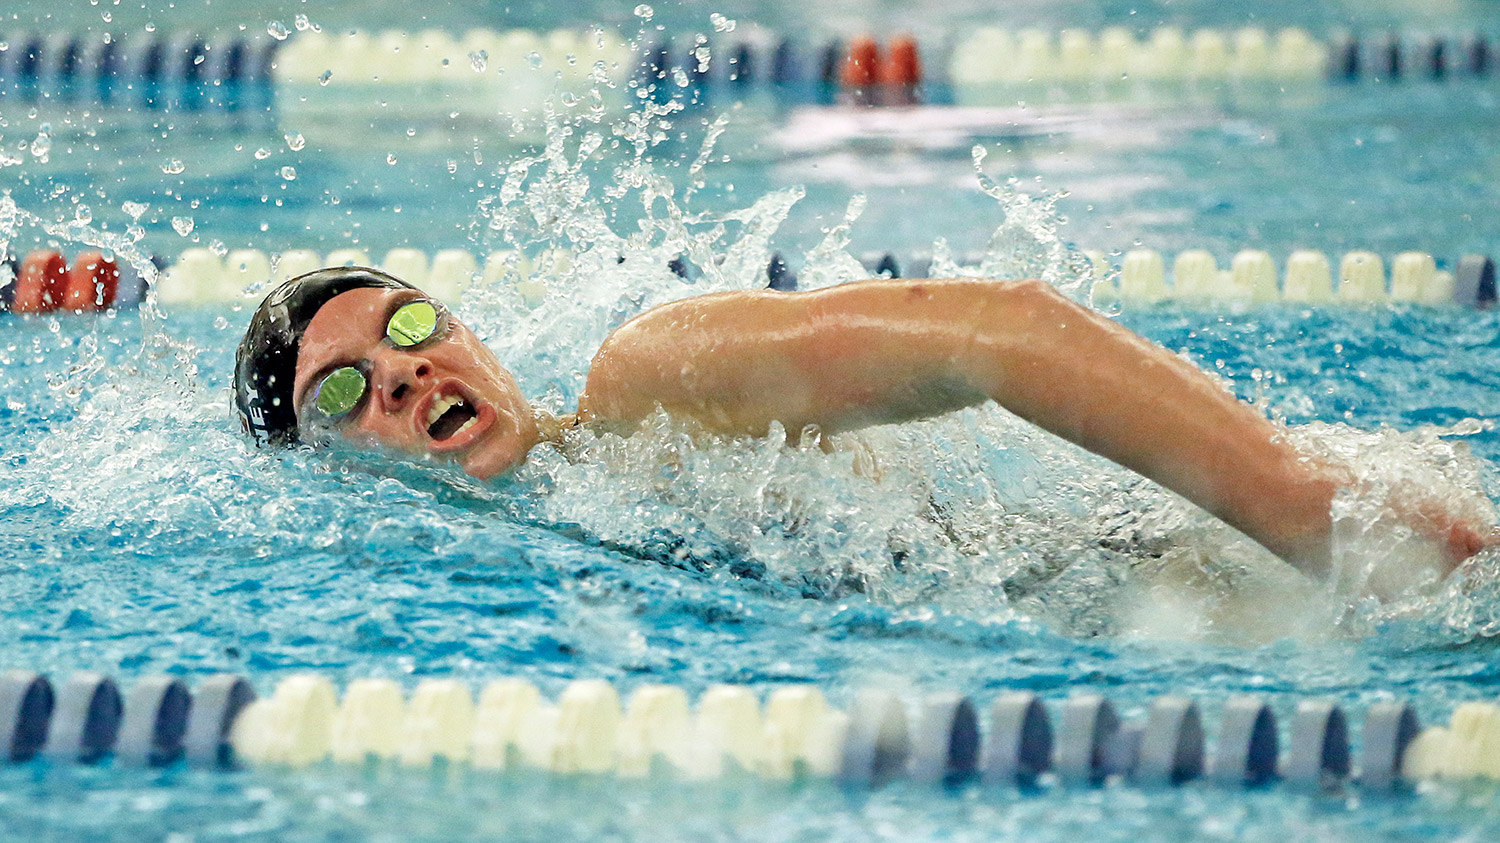 Caroline Mahoney was part of the Cape Elizabeth relay team that set a school – and pool – record in the 400-yard freestyle relay Thursday, with a time of 3:40.42.